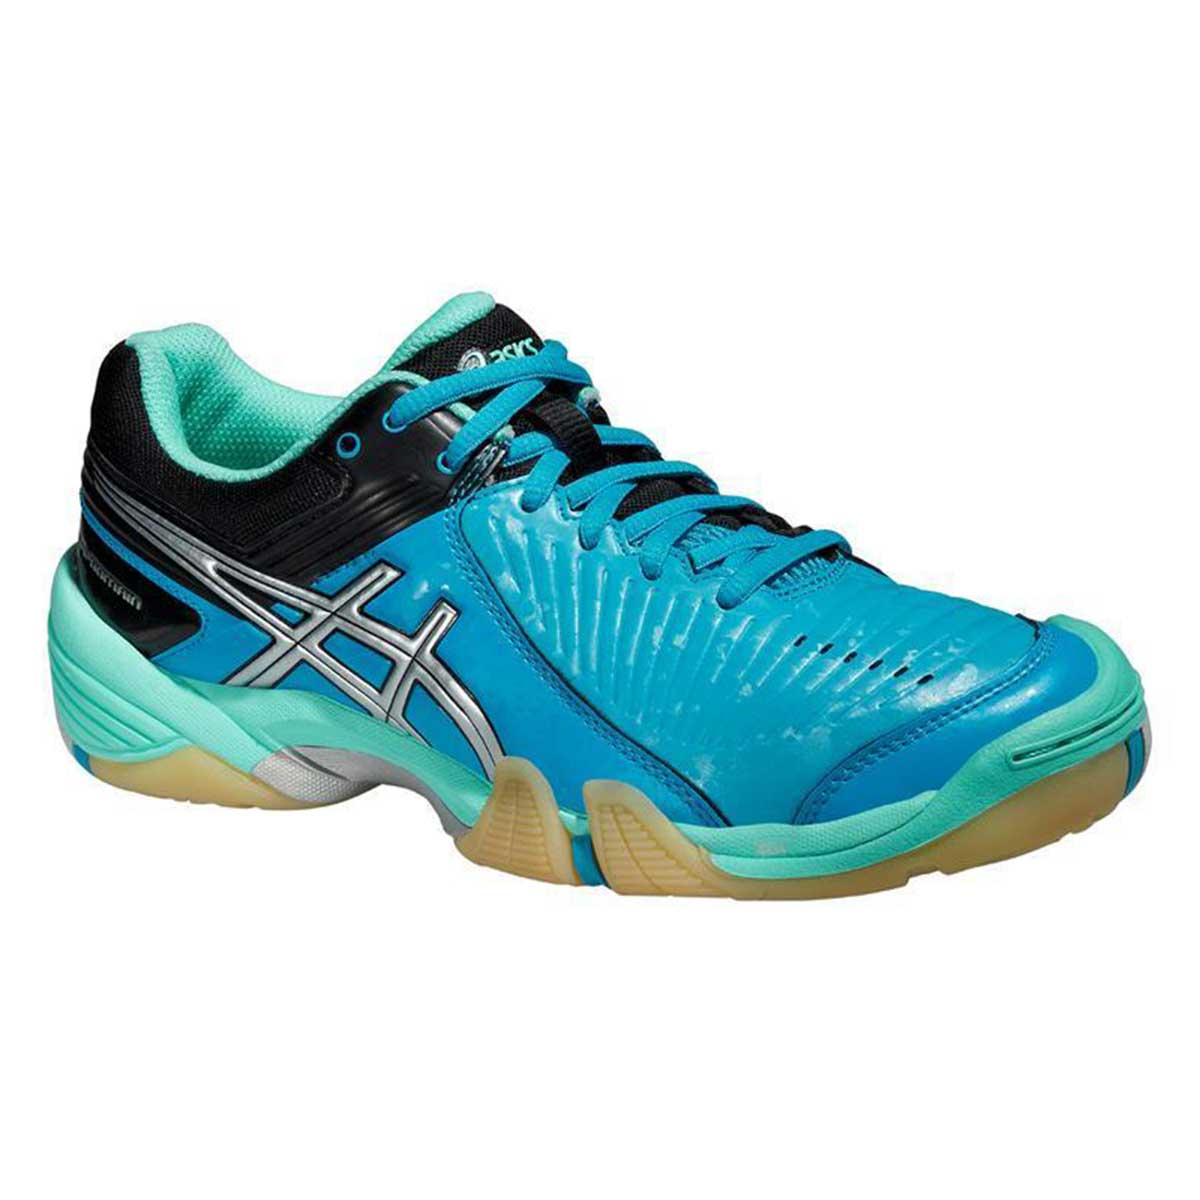 Asics Gel Domain Women's Court Shoes (Aqua MintSilverElectric)